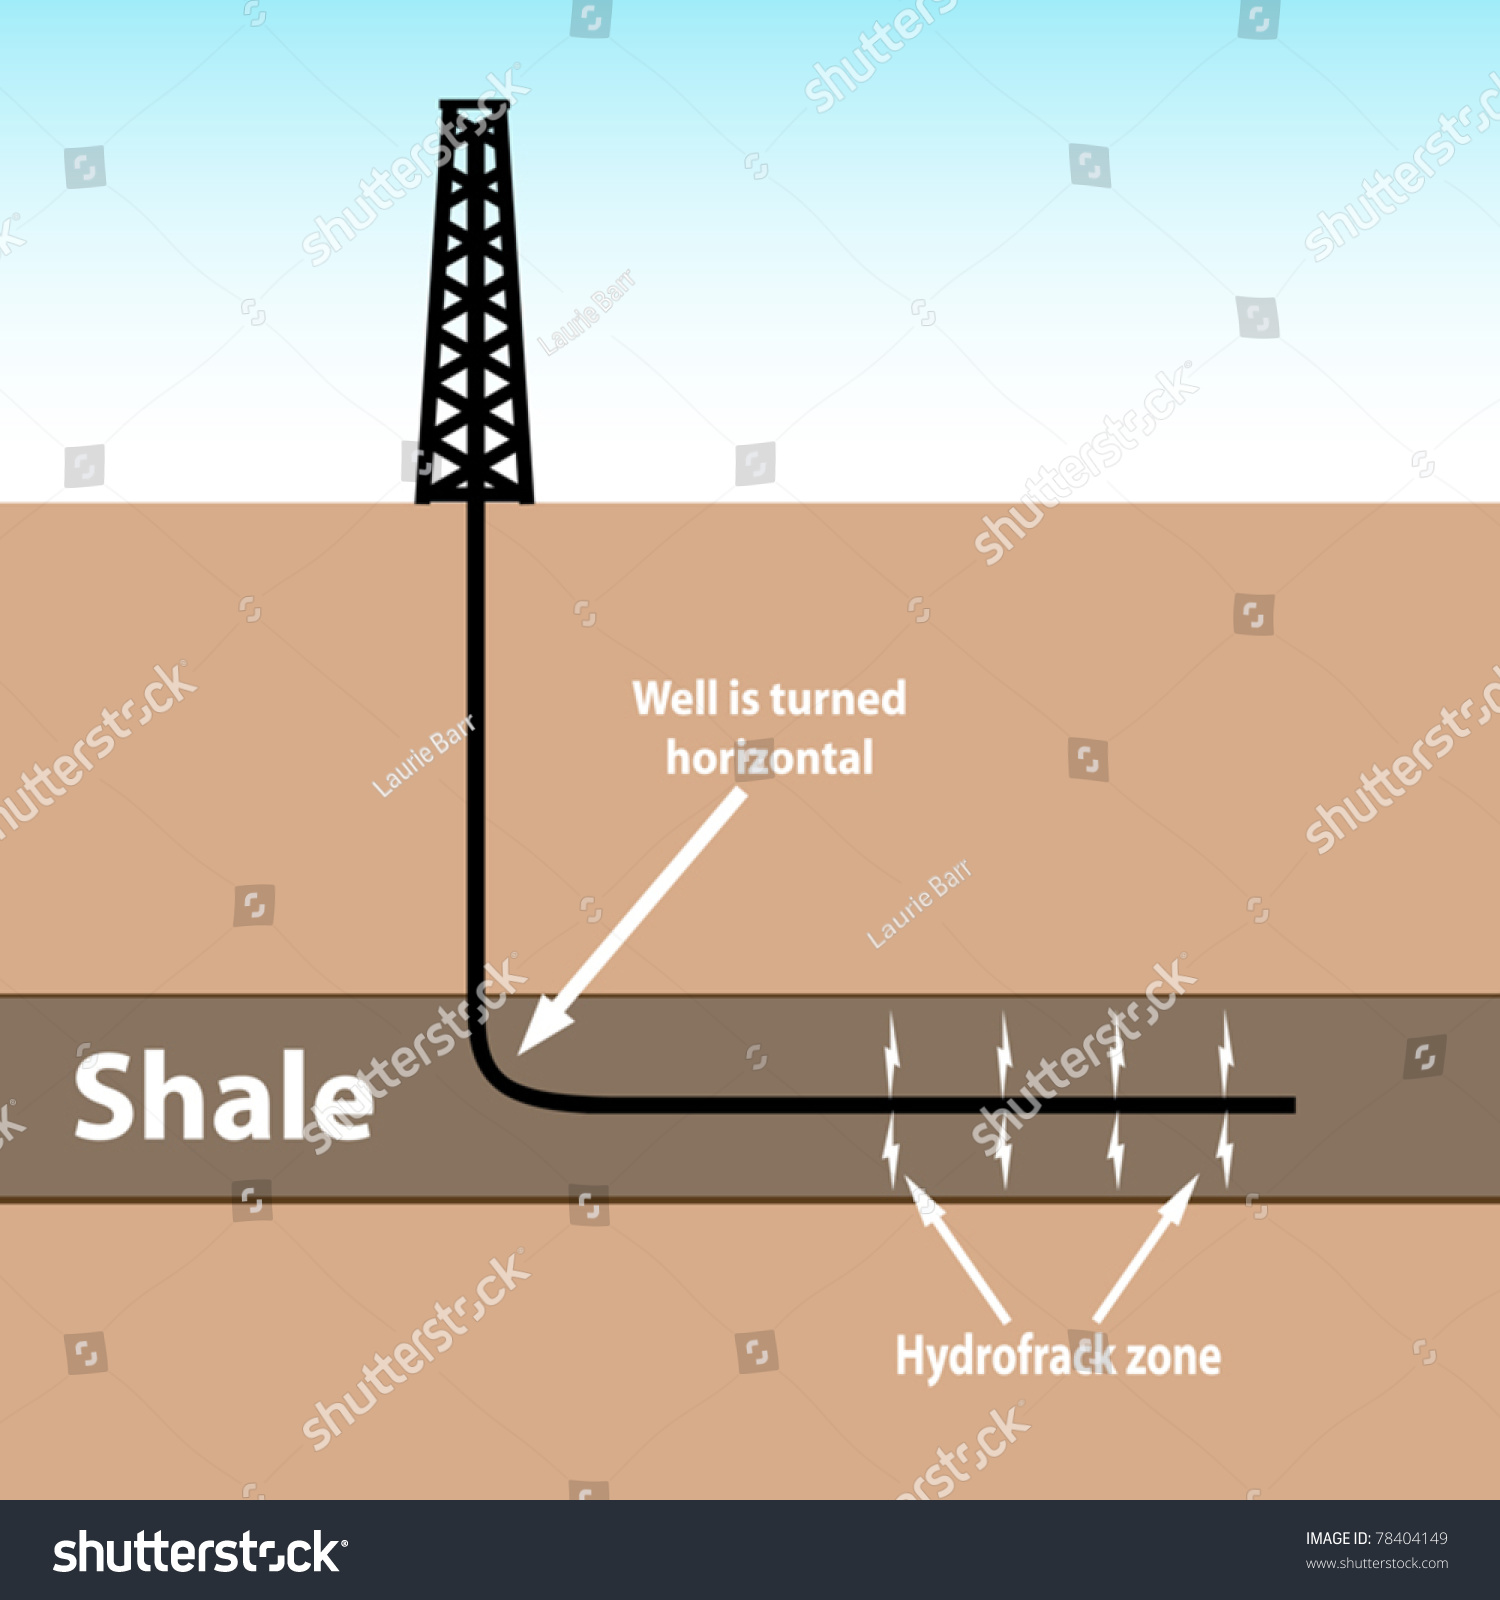 Shale Drill Rig Horizontal Well Bore Stock Vector 78404149